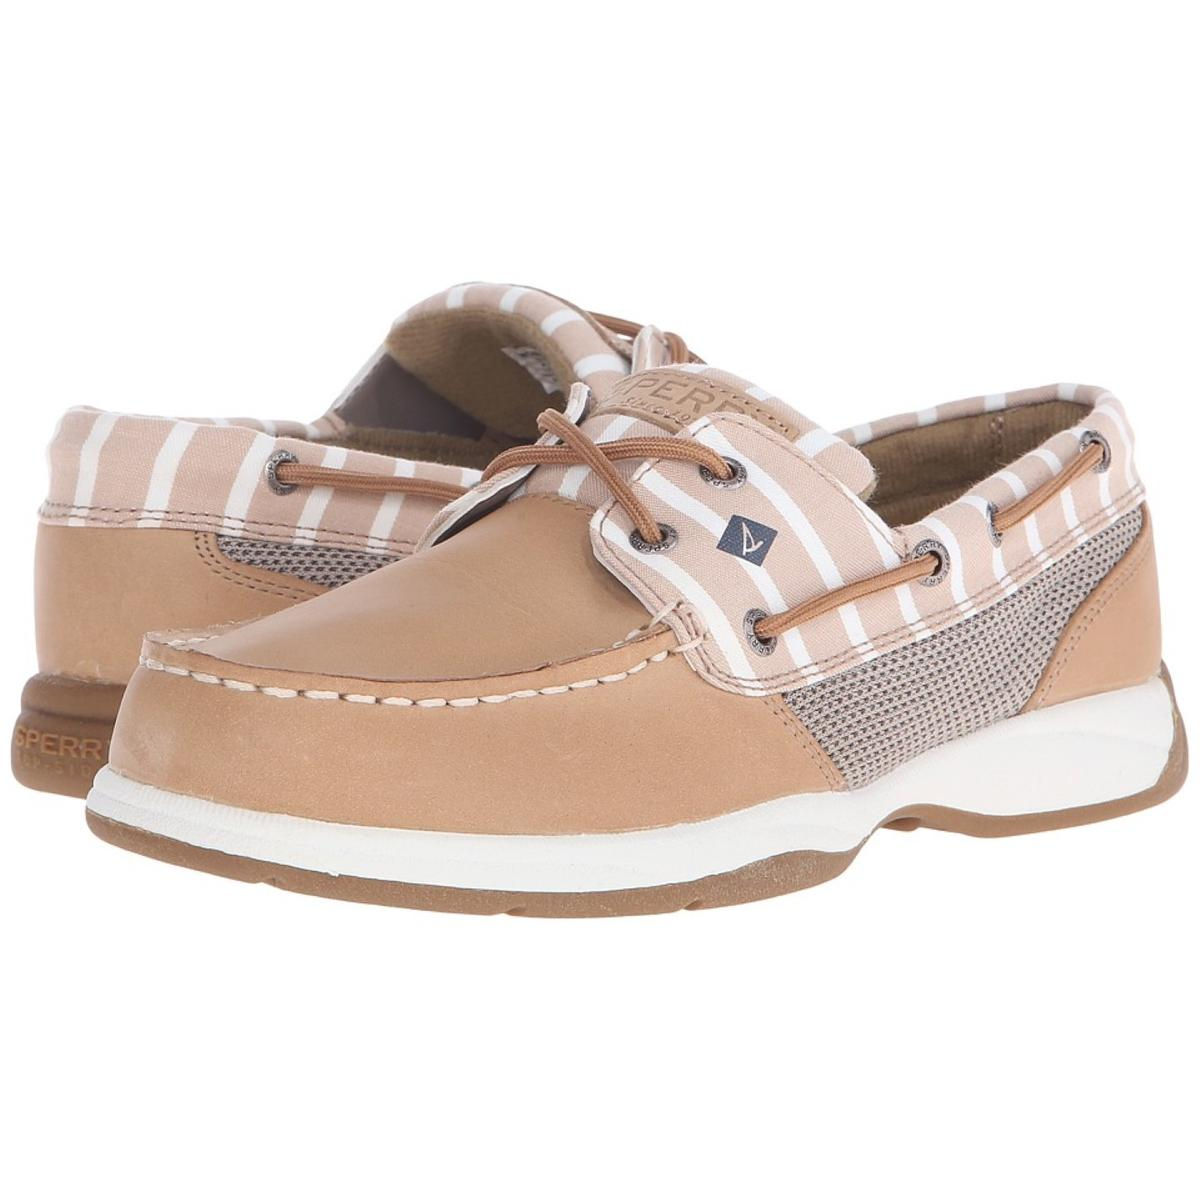 Sperry Top-Sider Intrepid Stripe- Women's Womens Linen Boat Shoes